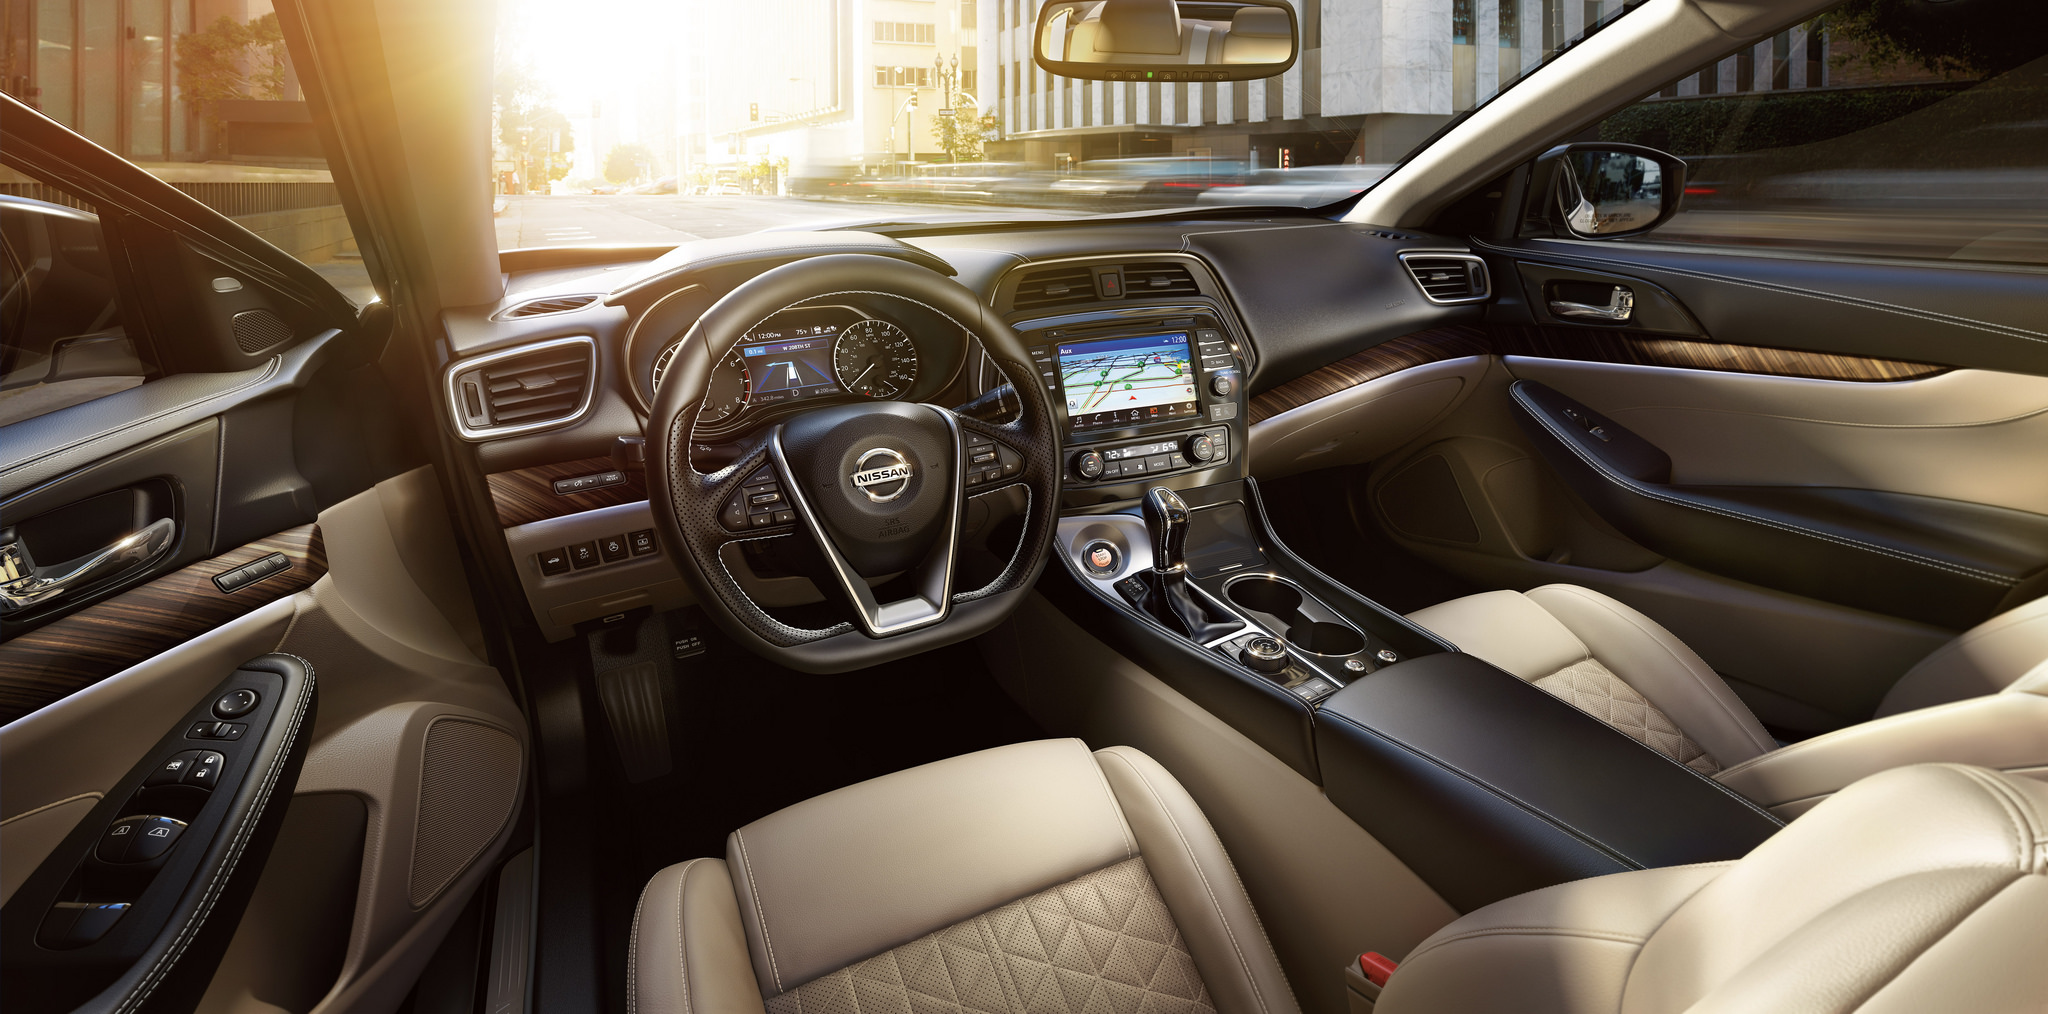 Nissan maxima named to 10 best interior list vanachro Images